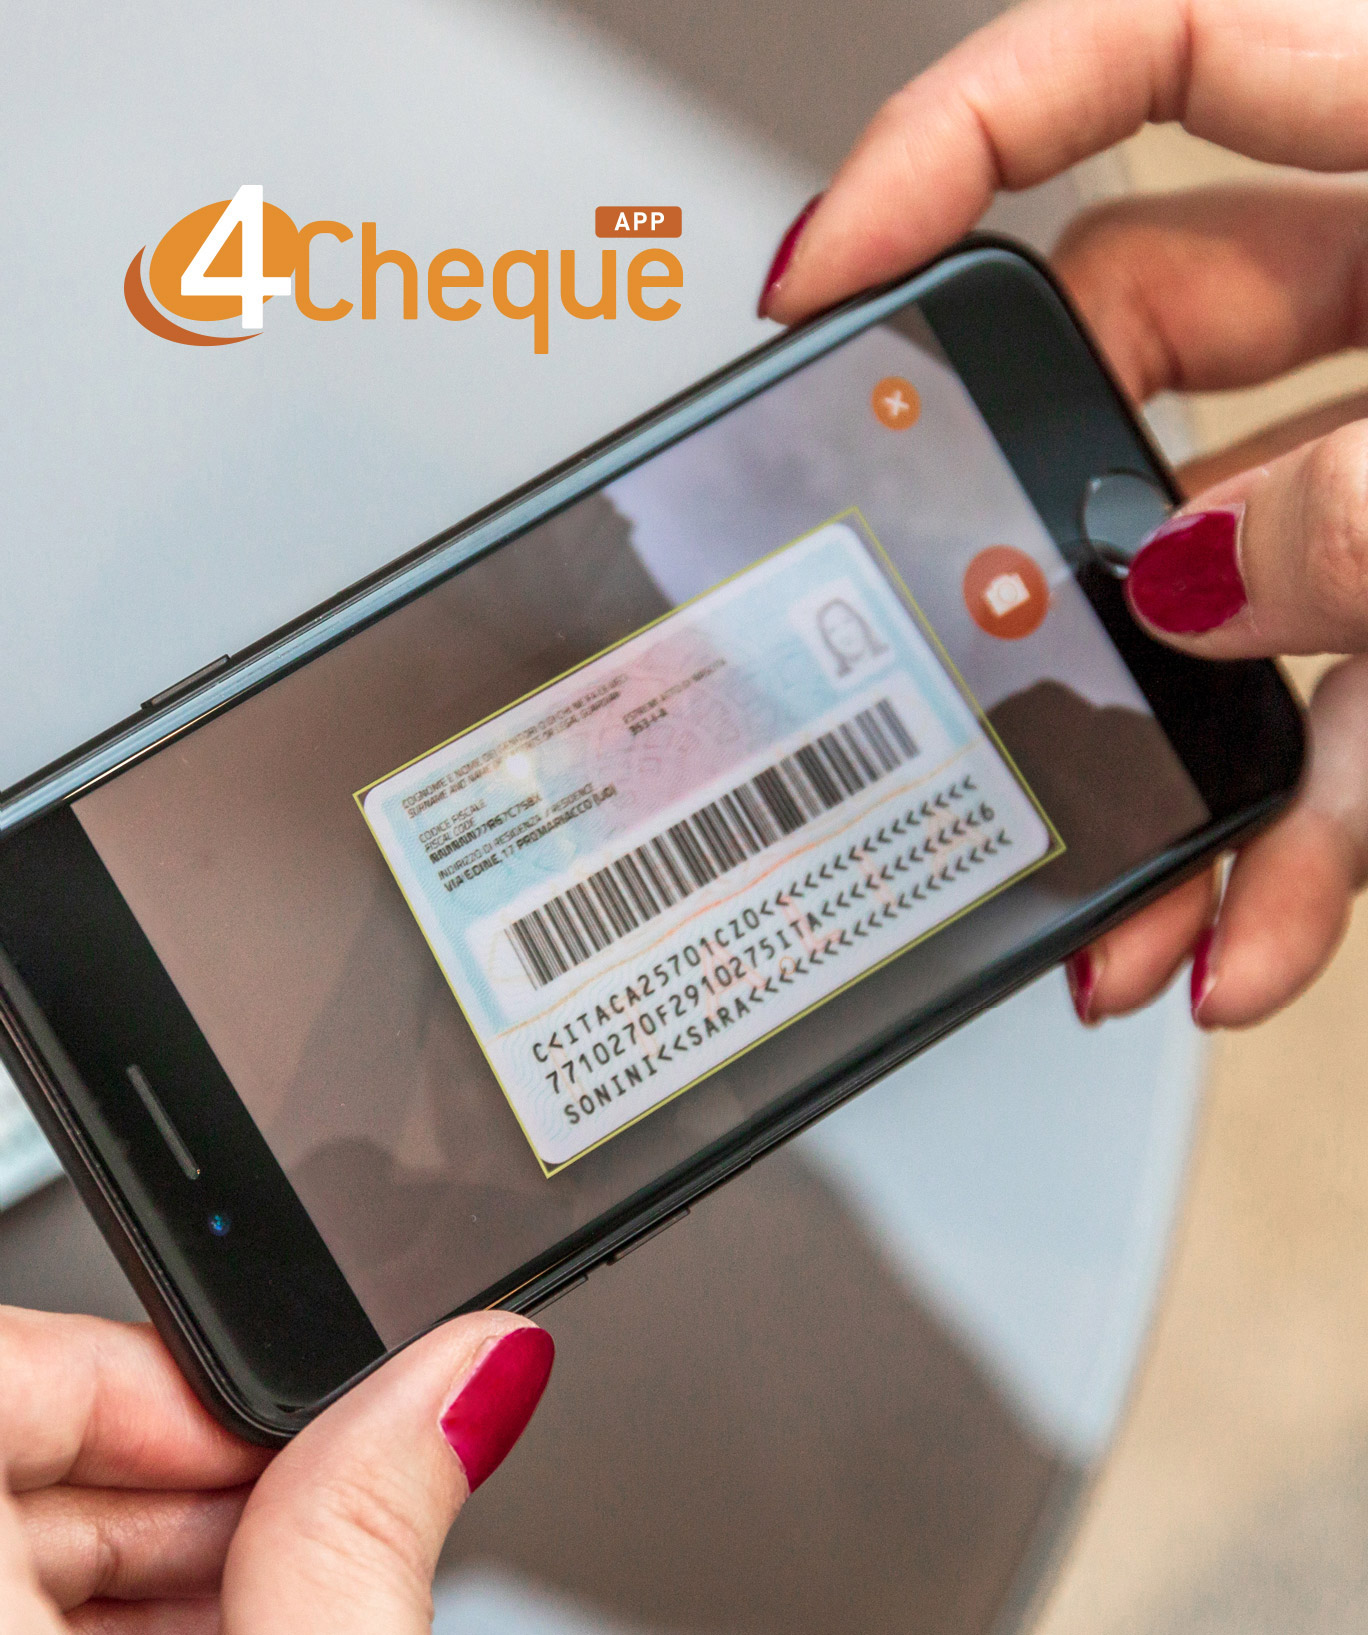 4Cheque APP turns a smartphone into a Check Scanner and much more